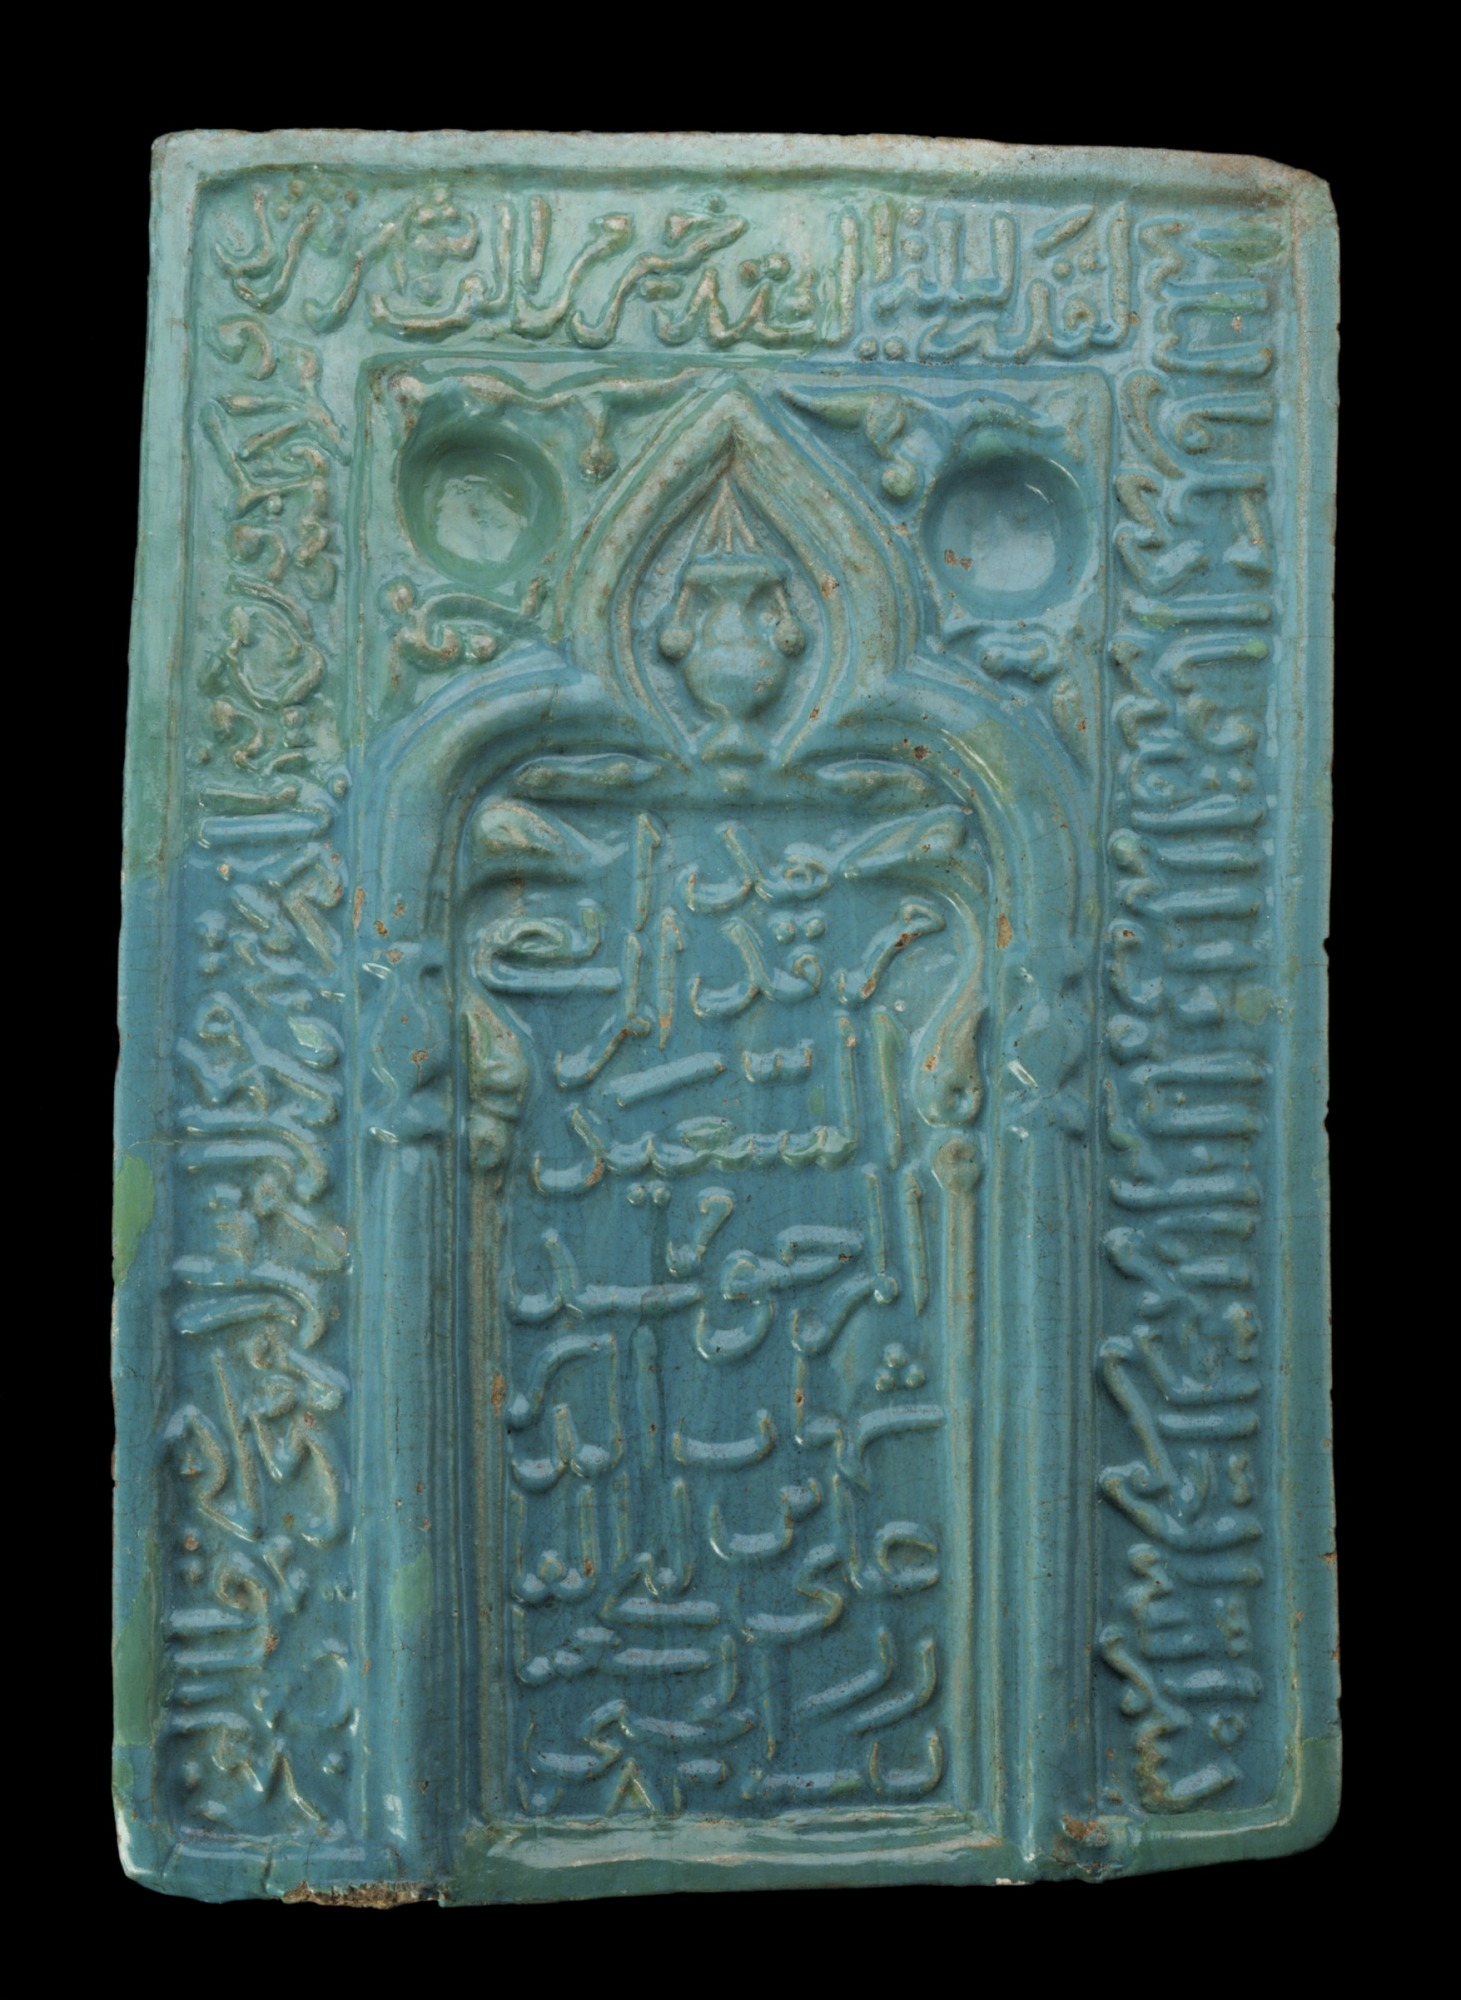 images for Tile in the shape of a mihrab